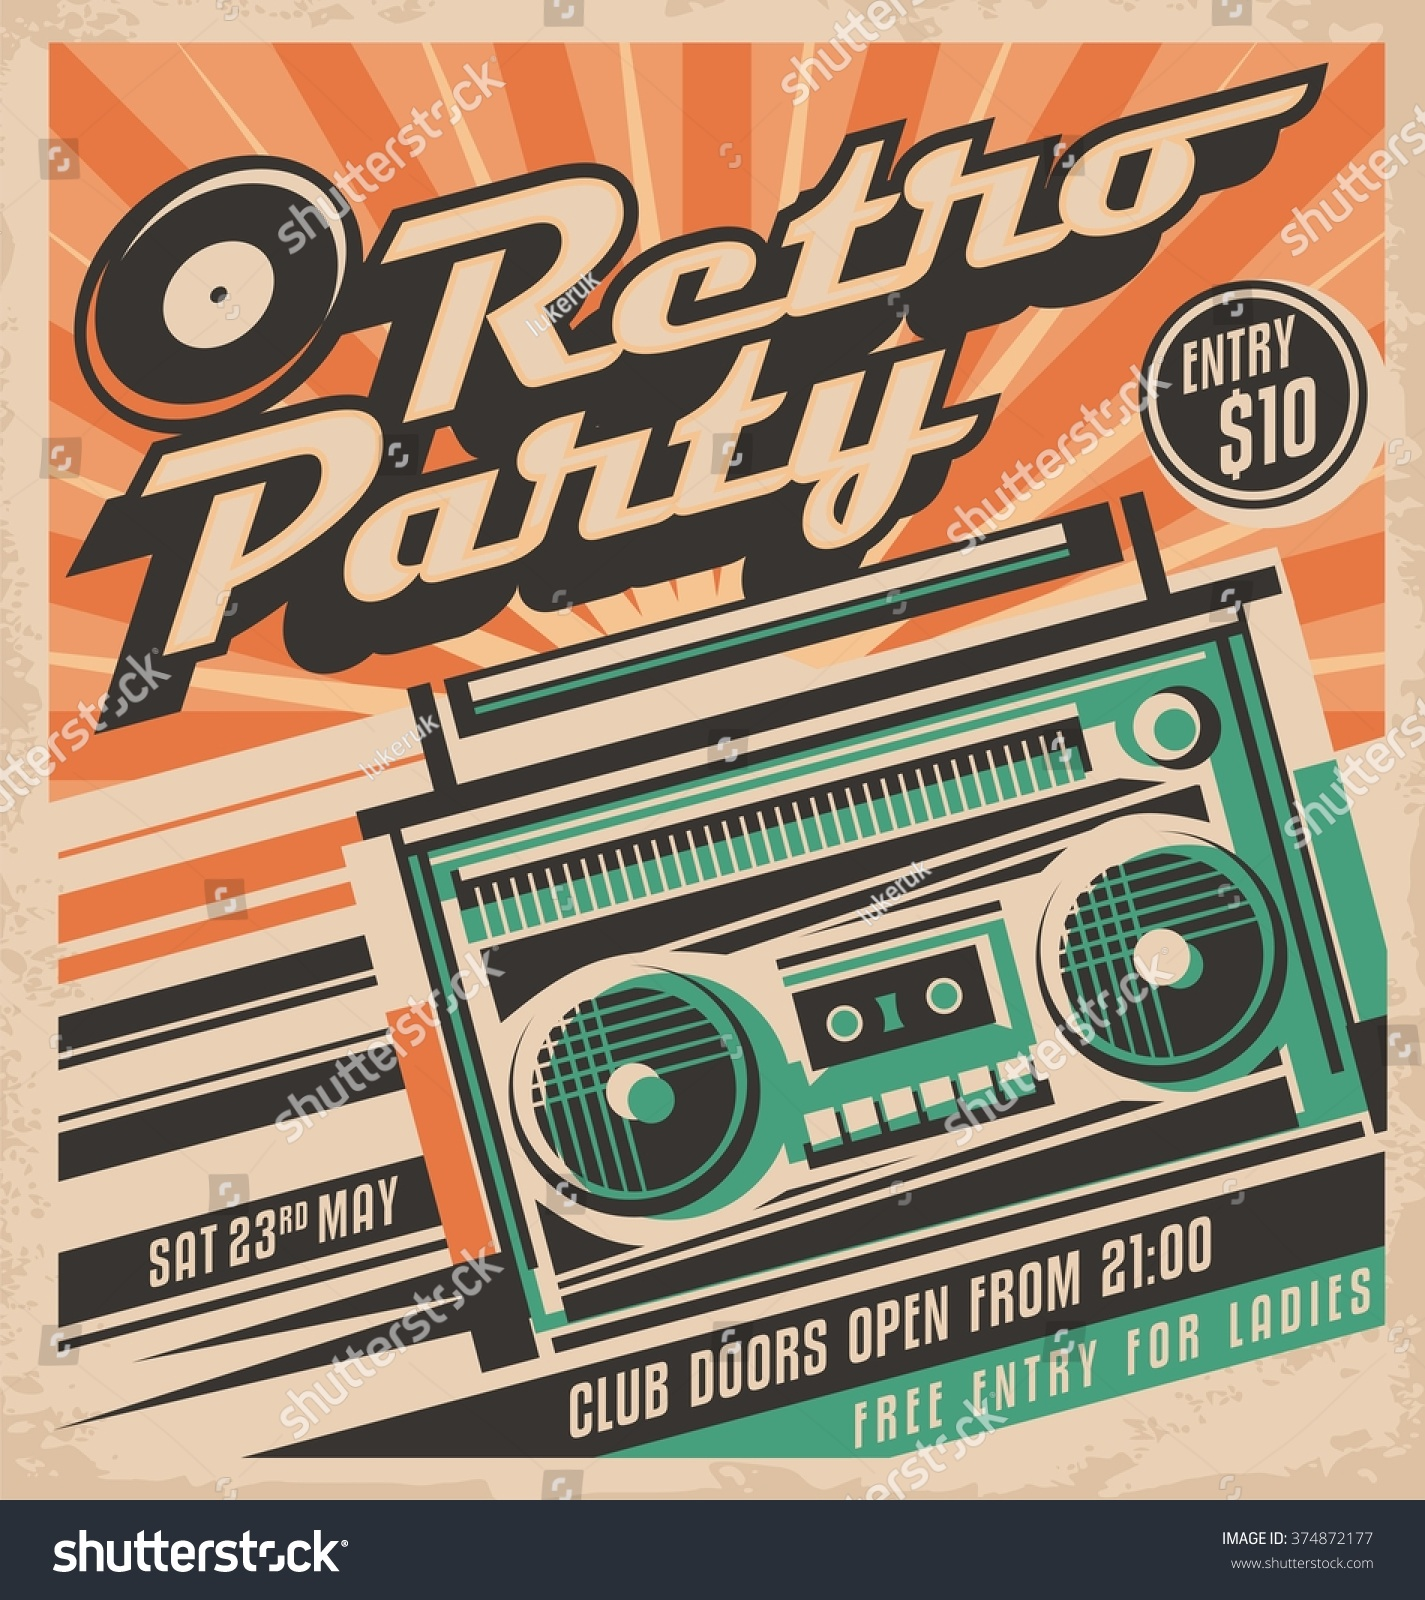 Retro party vector poster design concept  Disco music event at night club   vintage party invitation template  Unique music background theme. Royalty free Retro party vector poster design   374872177 Stock